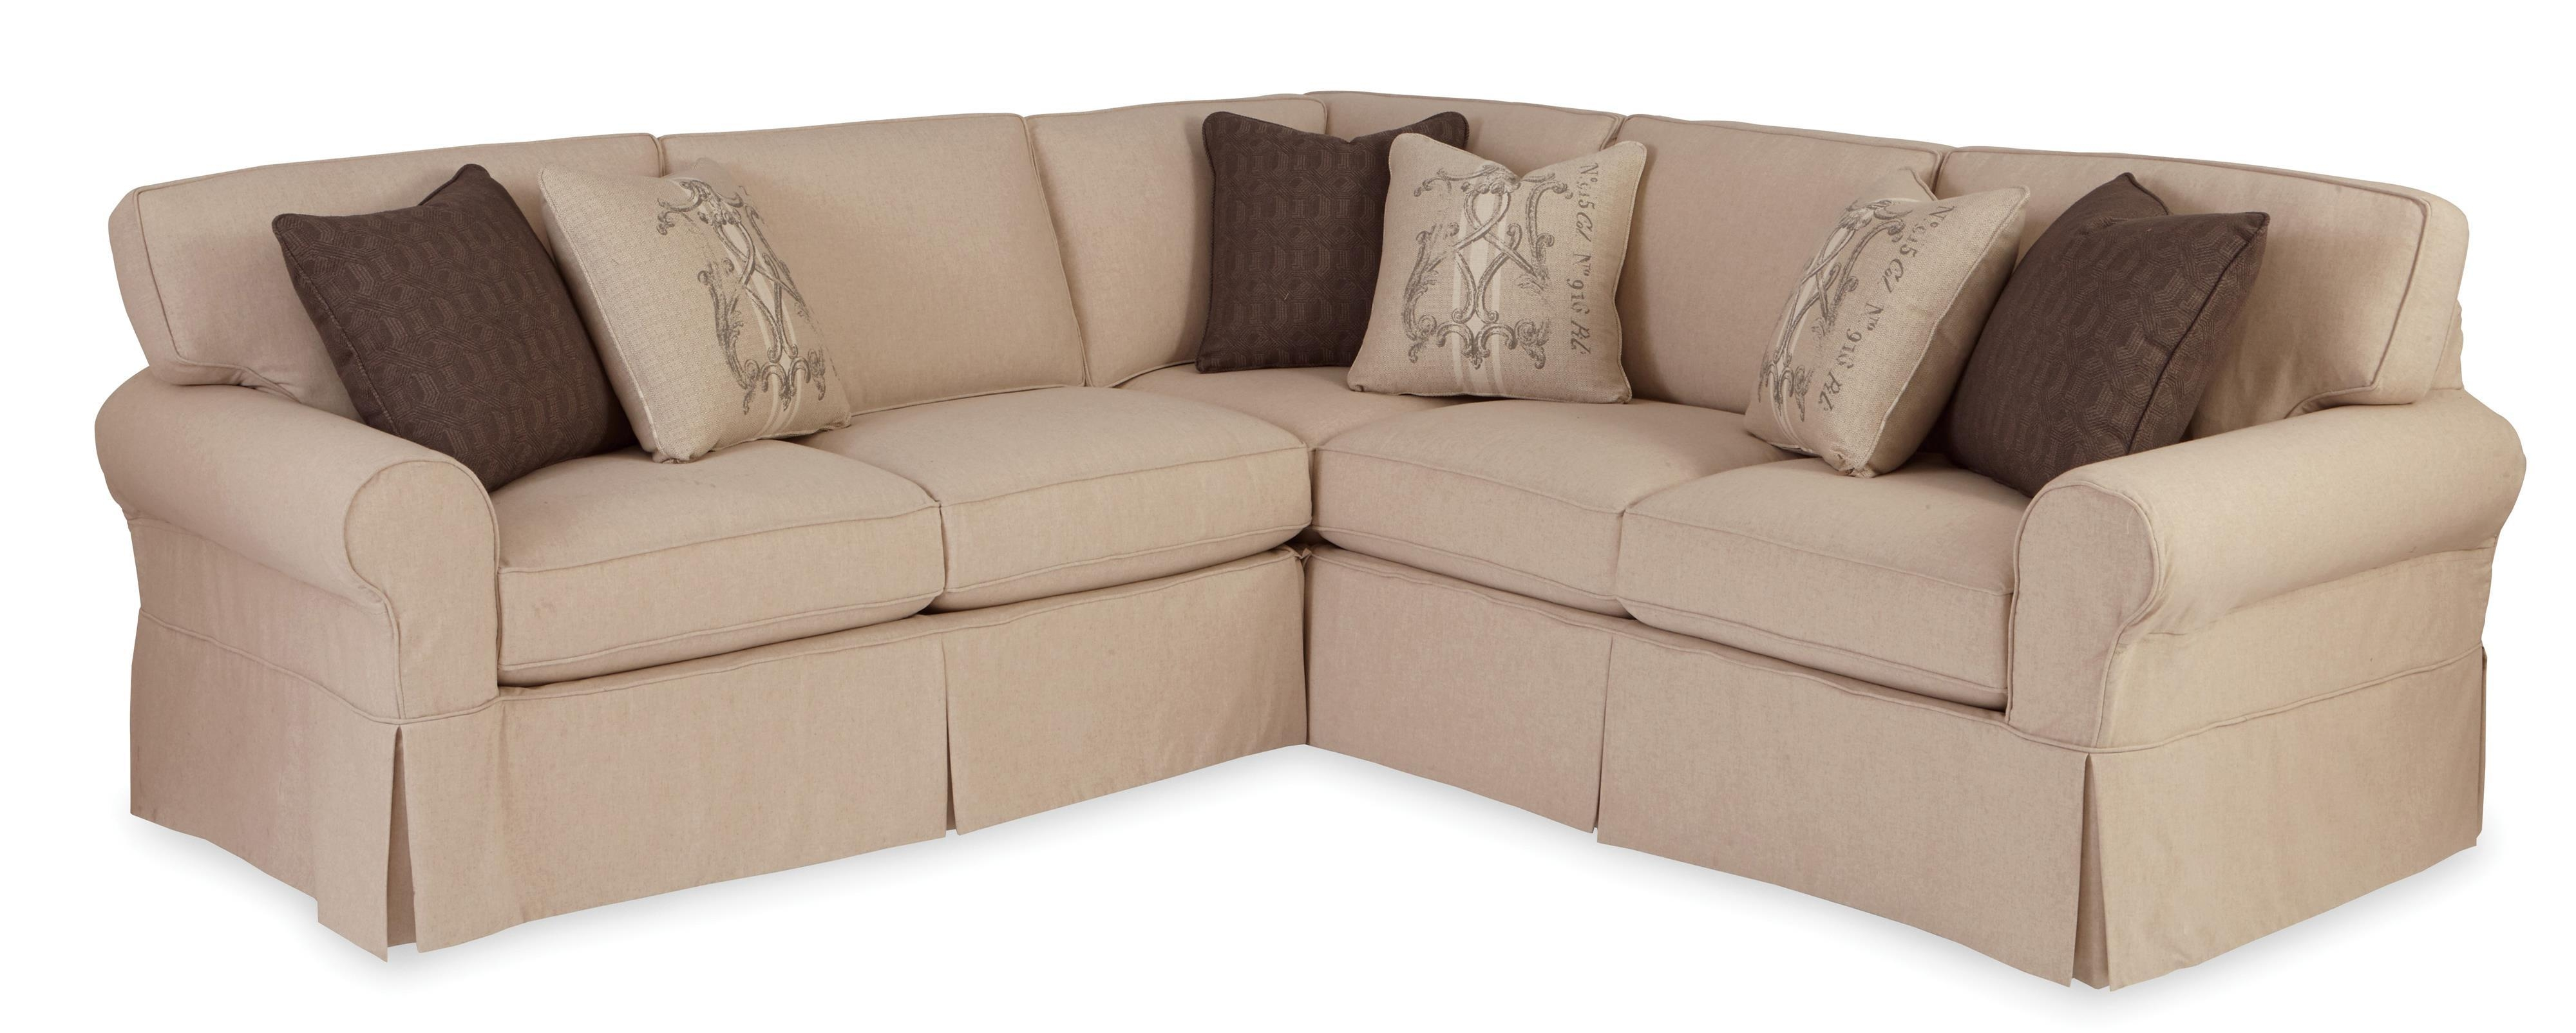 Furniture: Couch Covers At Walmart To Make Your Furniture Stylish With Regard To Sofas Cover For Sectional Sofas (Image 5 of 20)